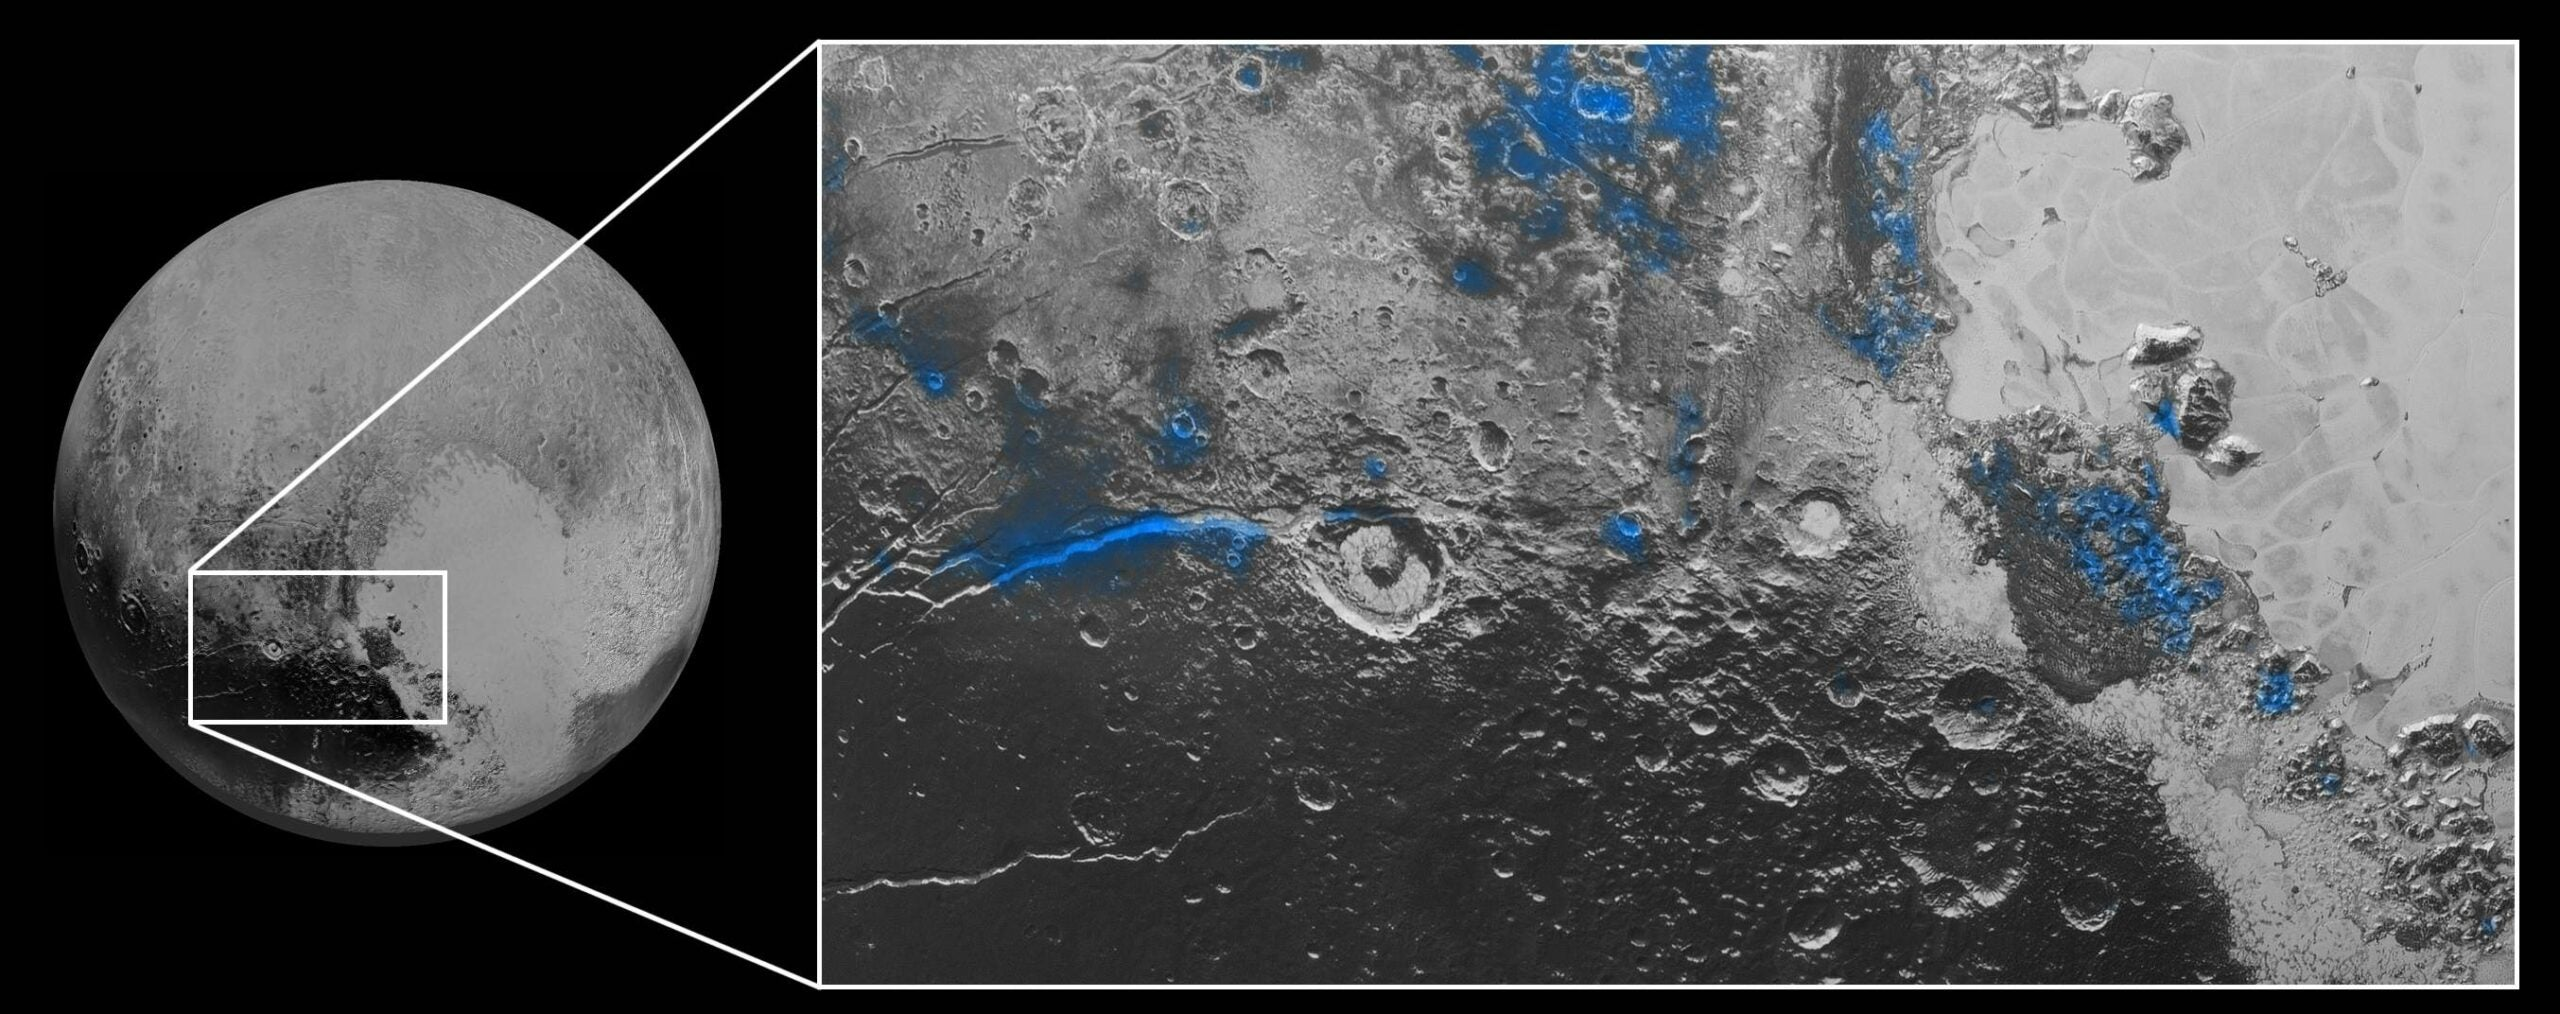 Pluto Has Red Ice And Blue Skies